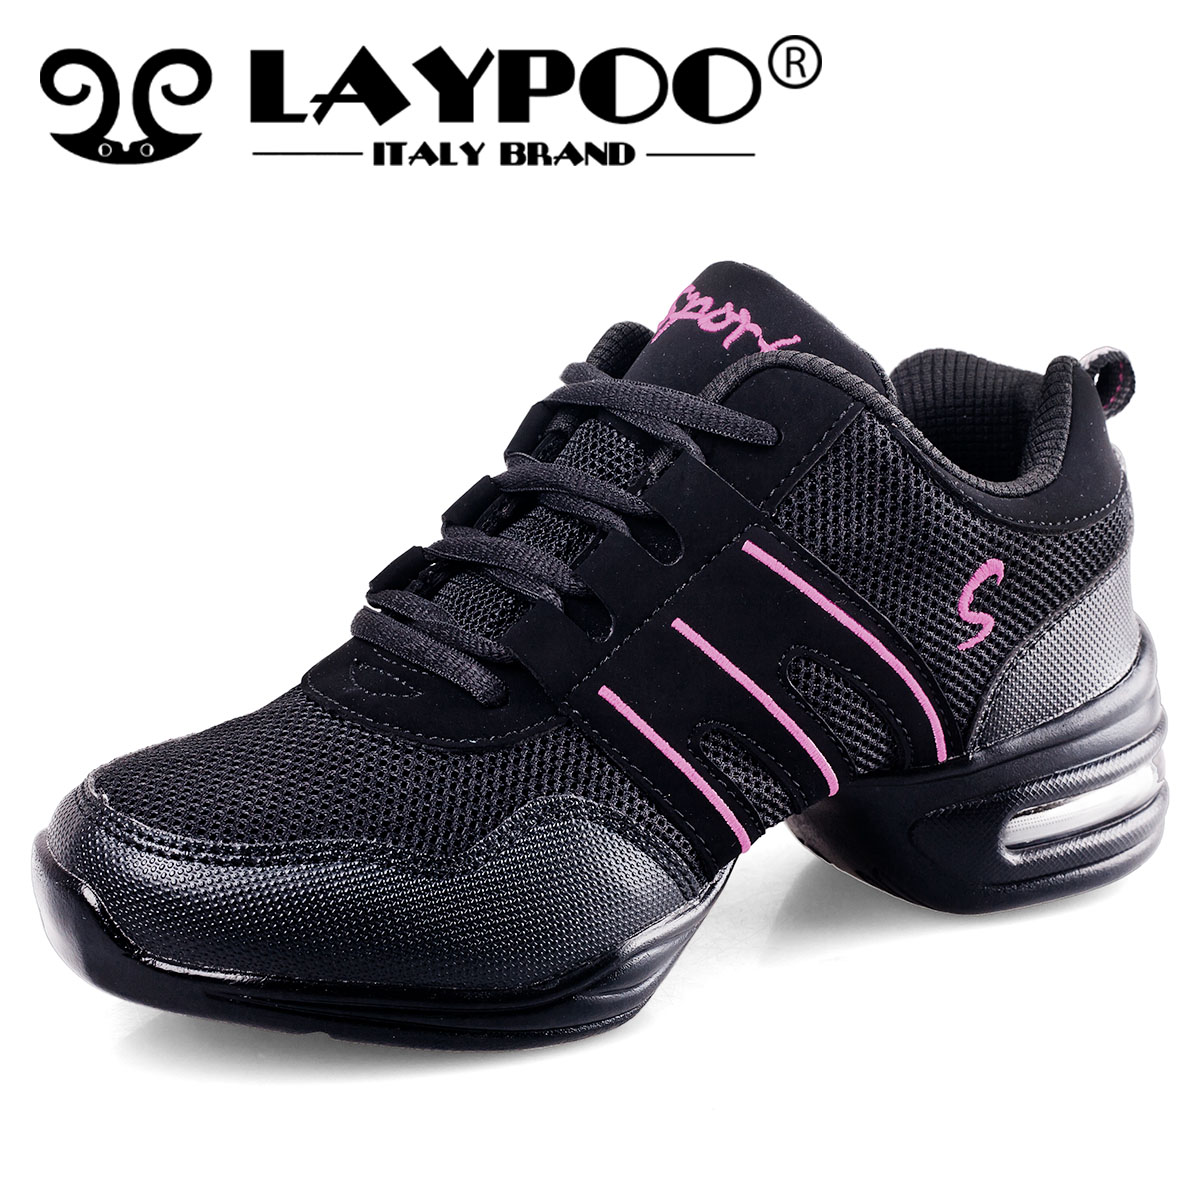 Increasing authentic modern dance shoes women's shoes non-slip soles and mesh ventilation leisure practice Dance Shoes Sneakers